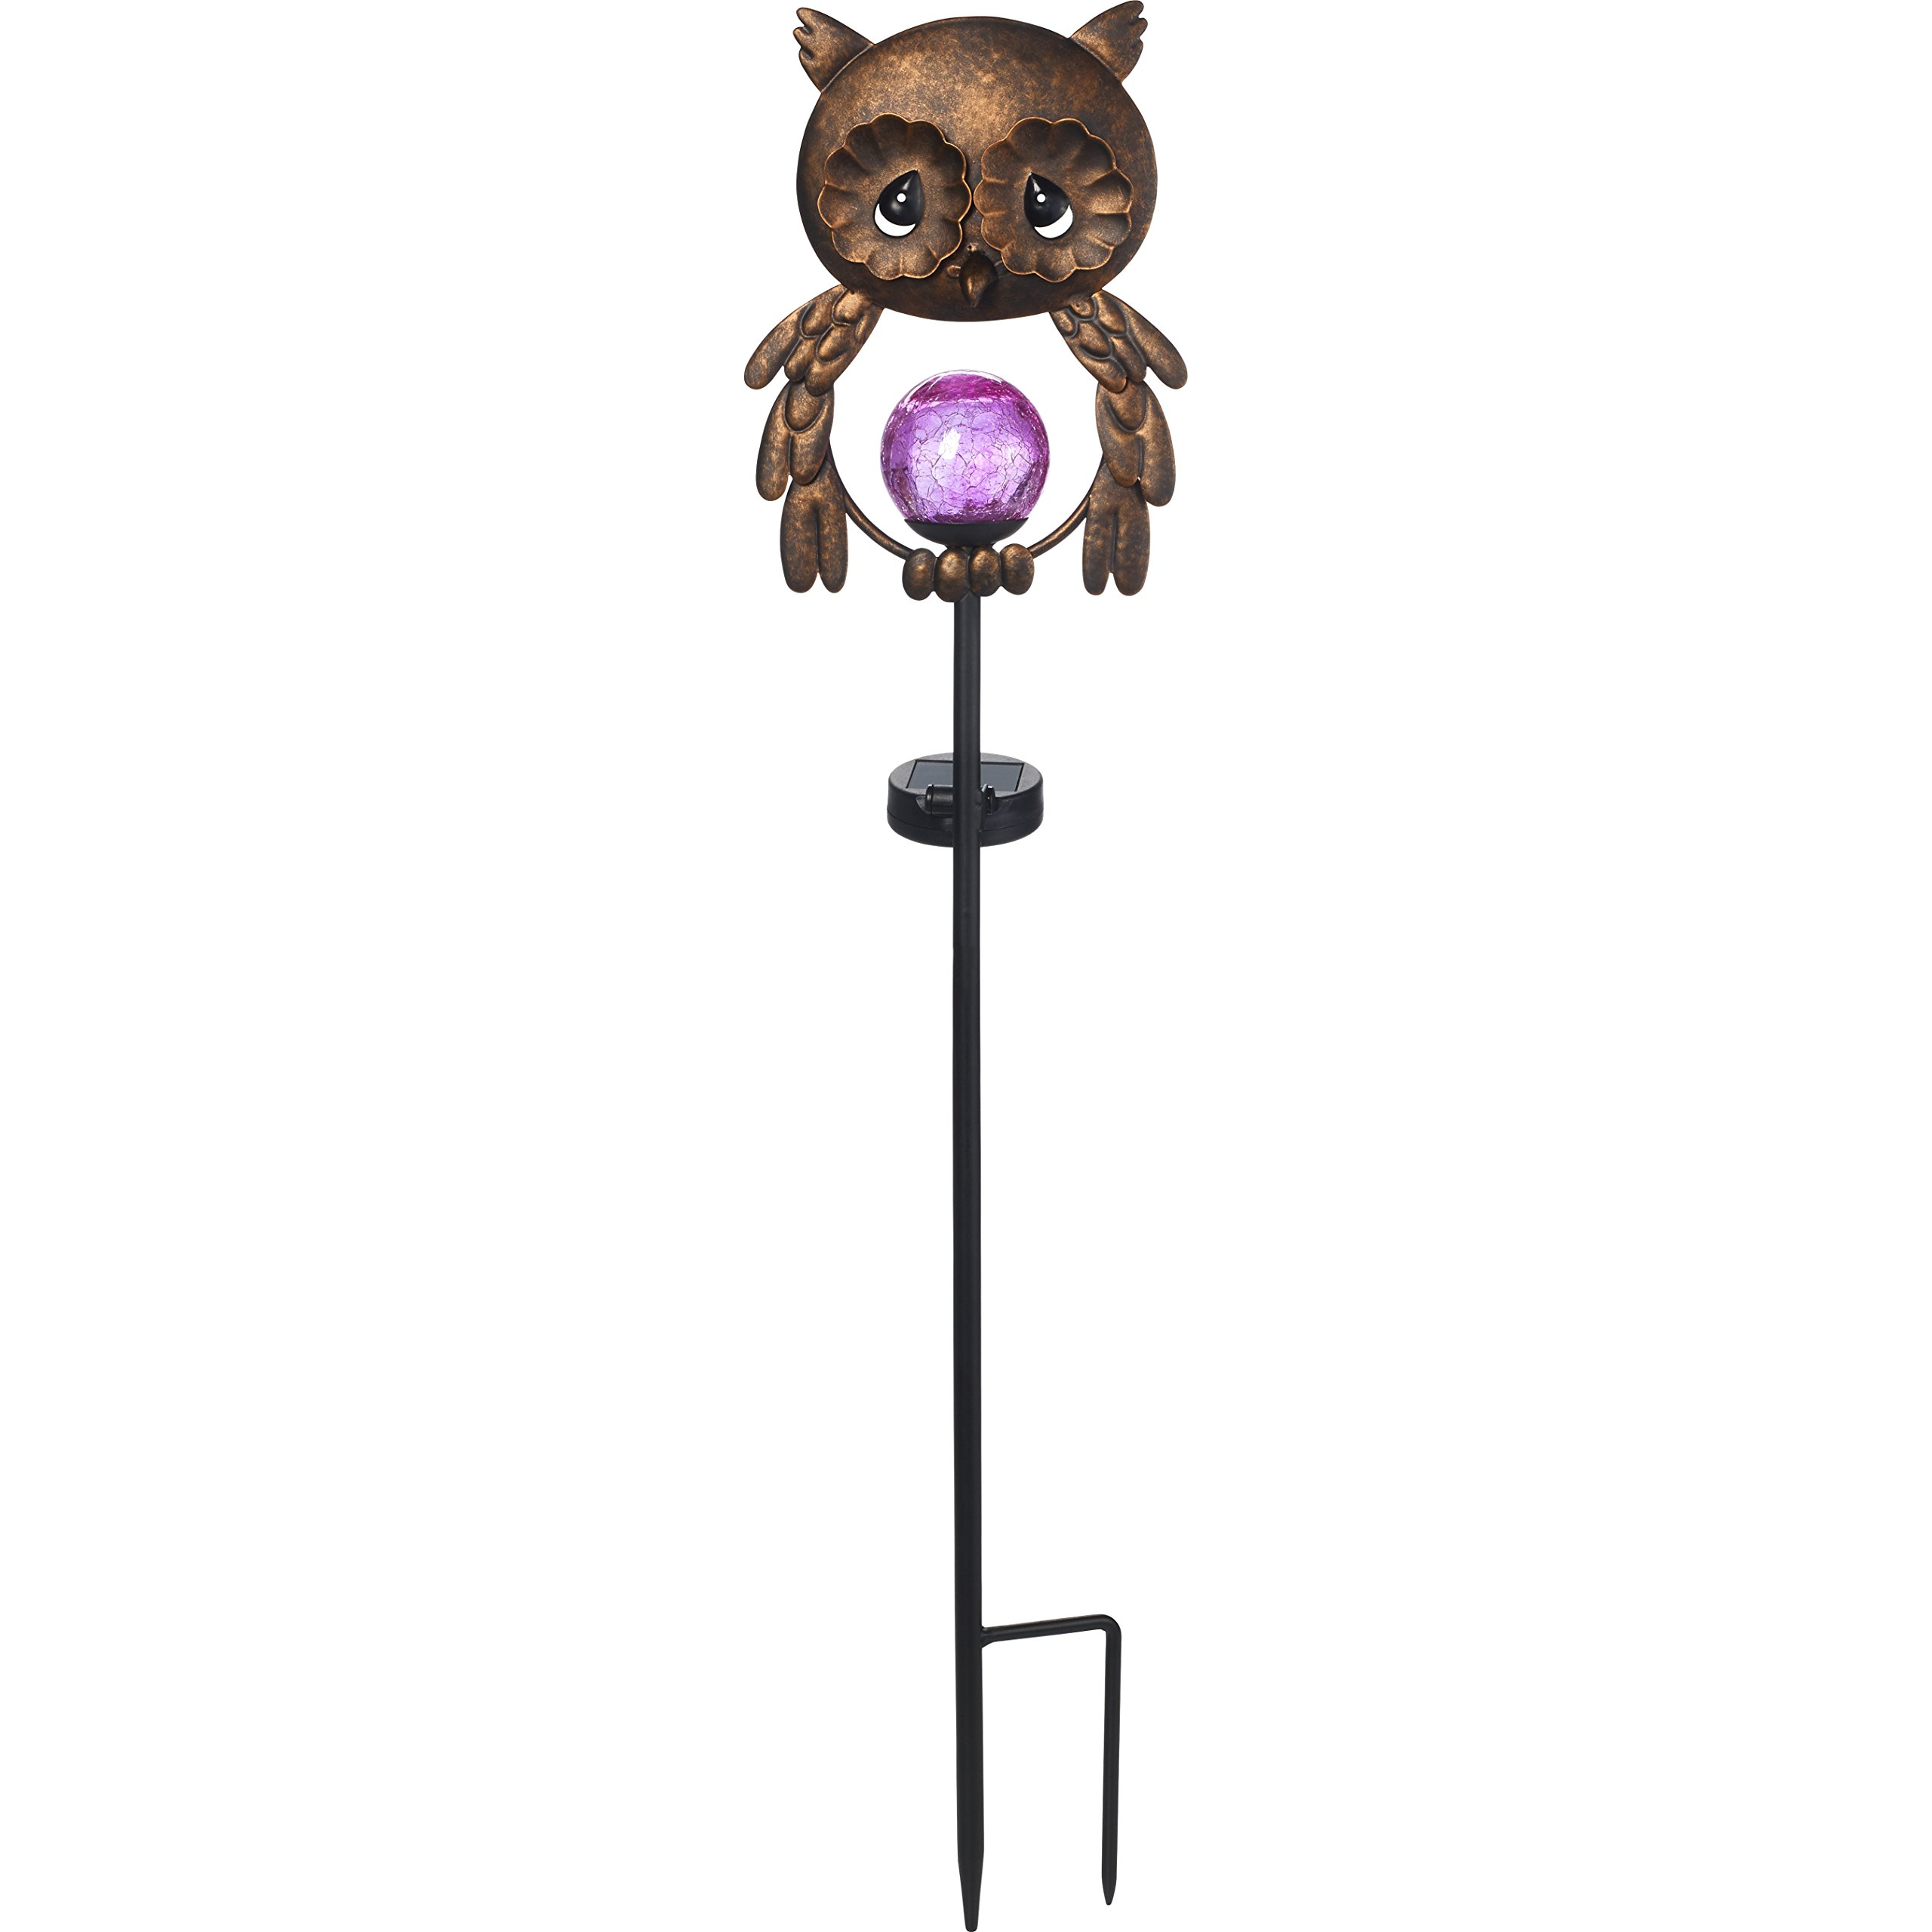 Precious Moments Garden Gifts by 171443 Lighted Owl LED Solar Glass Globe Decorative Scrollwork Metal Garden Stake Yard Decor, Bronze, 26-inch High